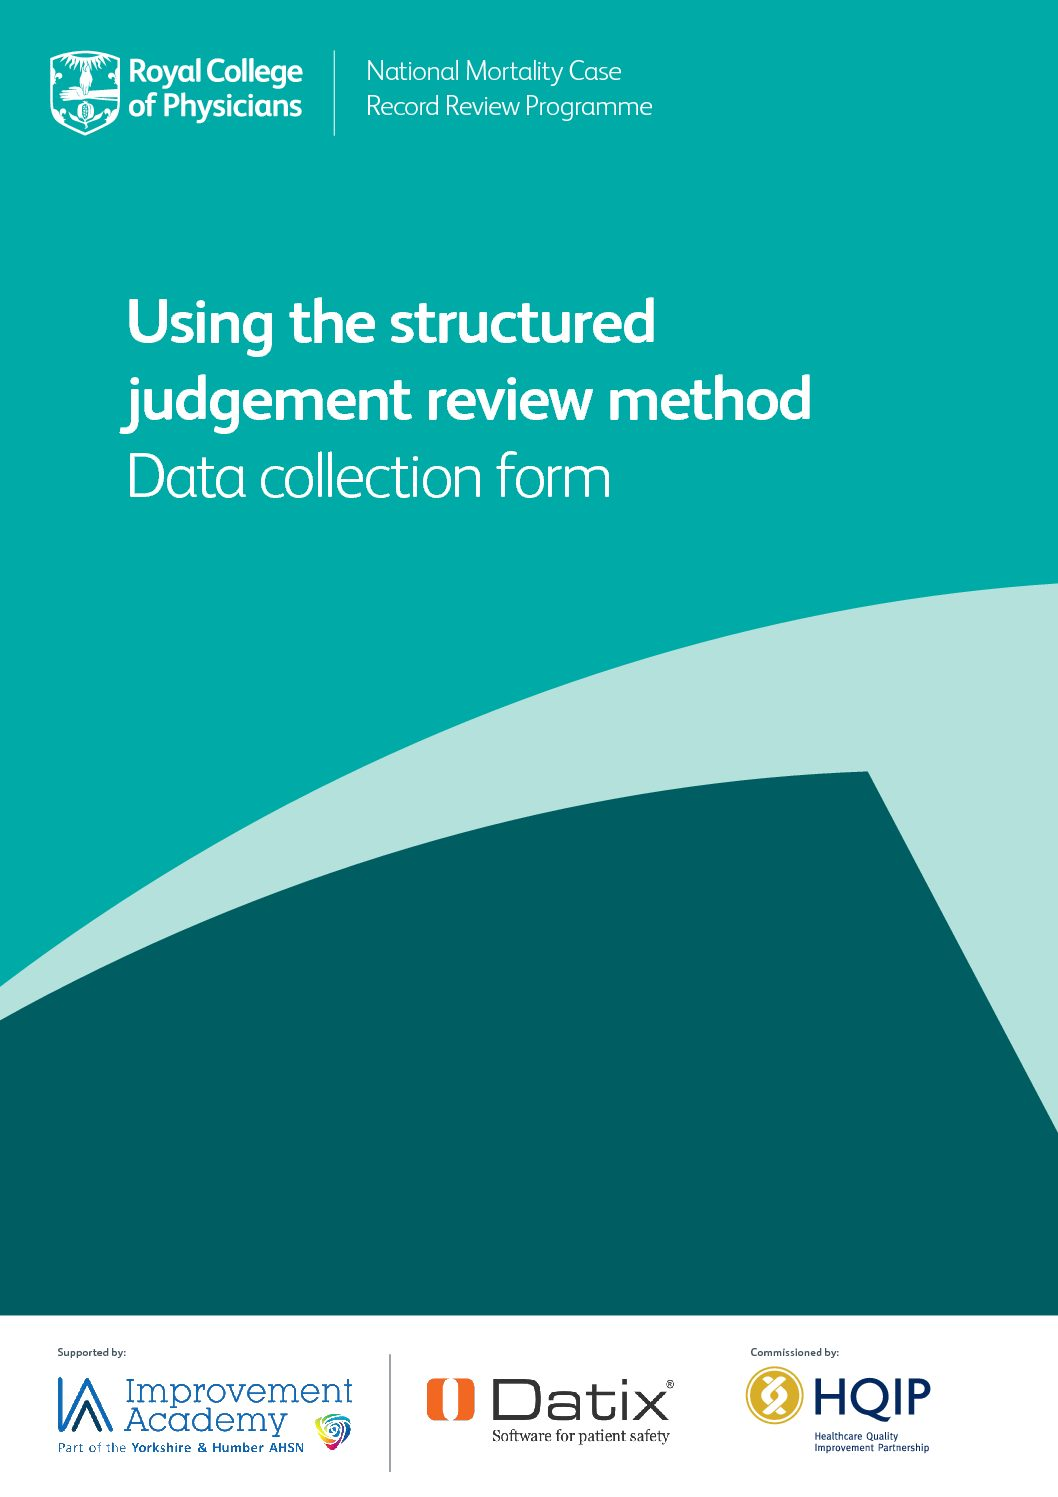 Royal College of Physicians National Mortality Case Record Review: Using the structured judgement review method - data collection form, 2016